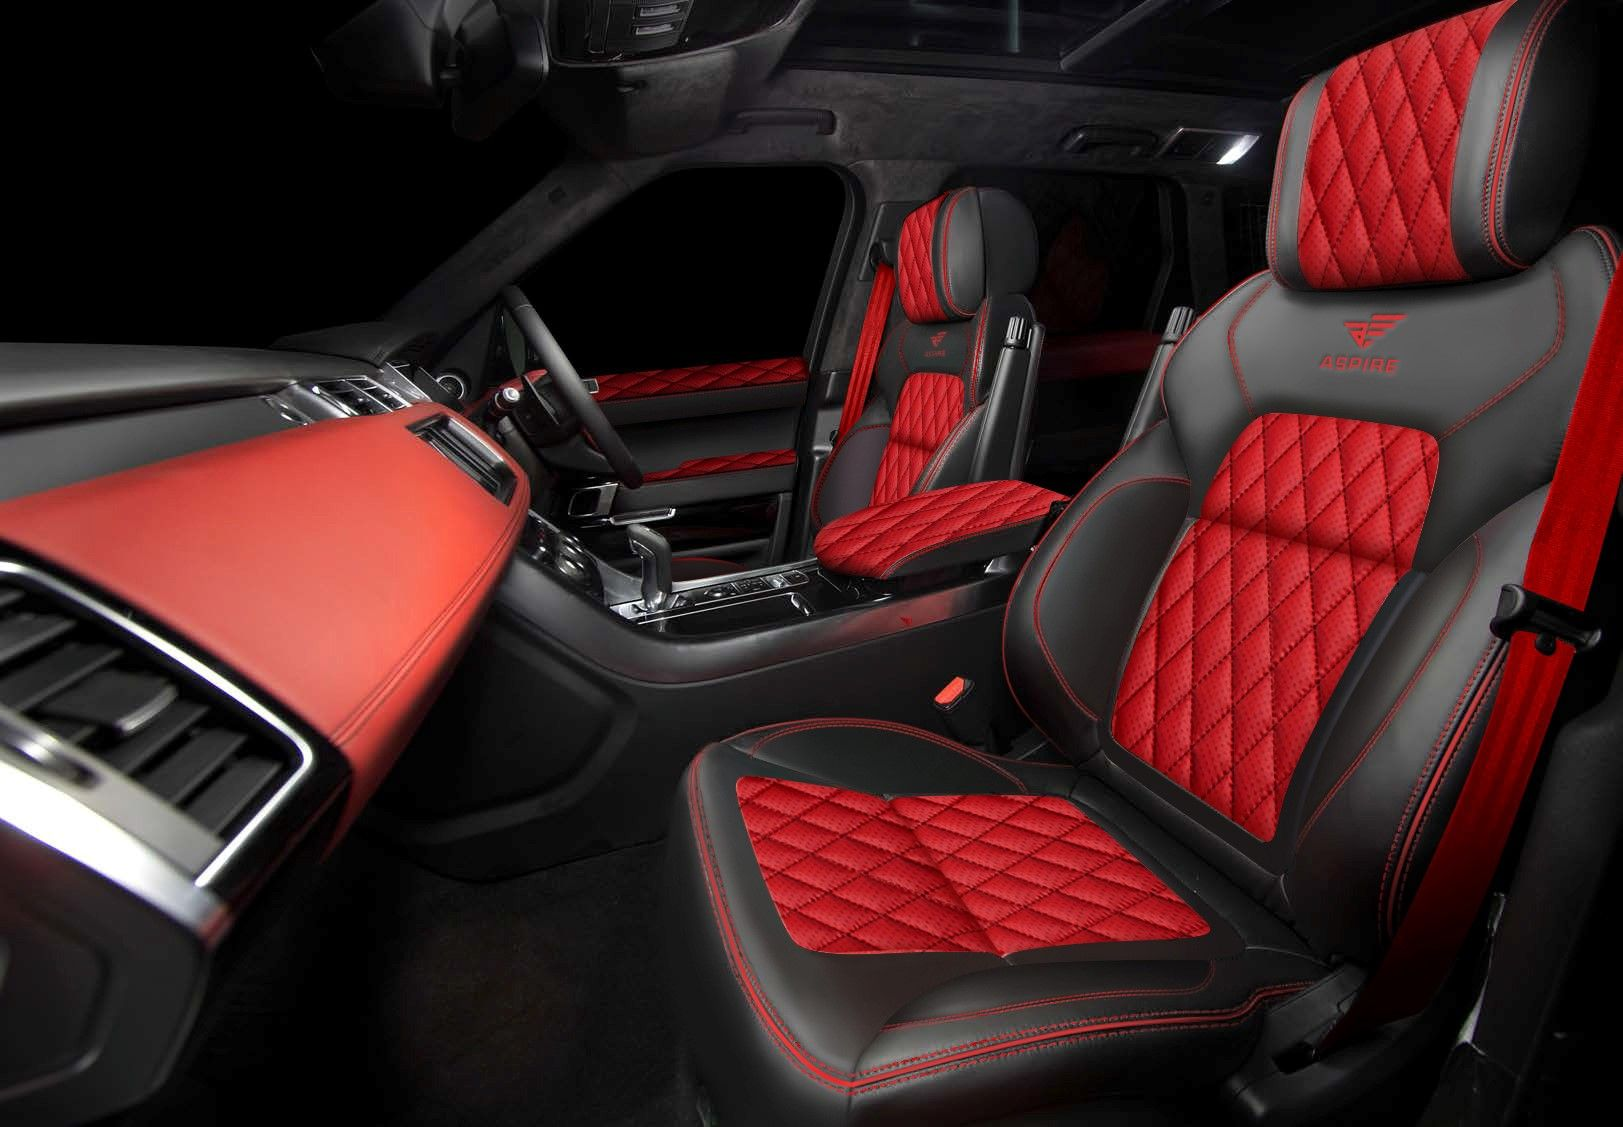 bespoke body styling and kits for the new range rover sport red and black interior. Black Bedroom Furniture Sets. Home Design Ideas